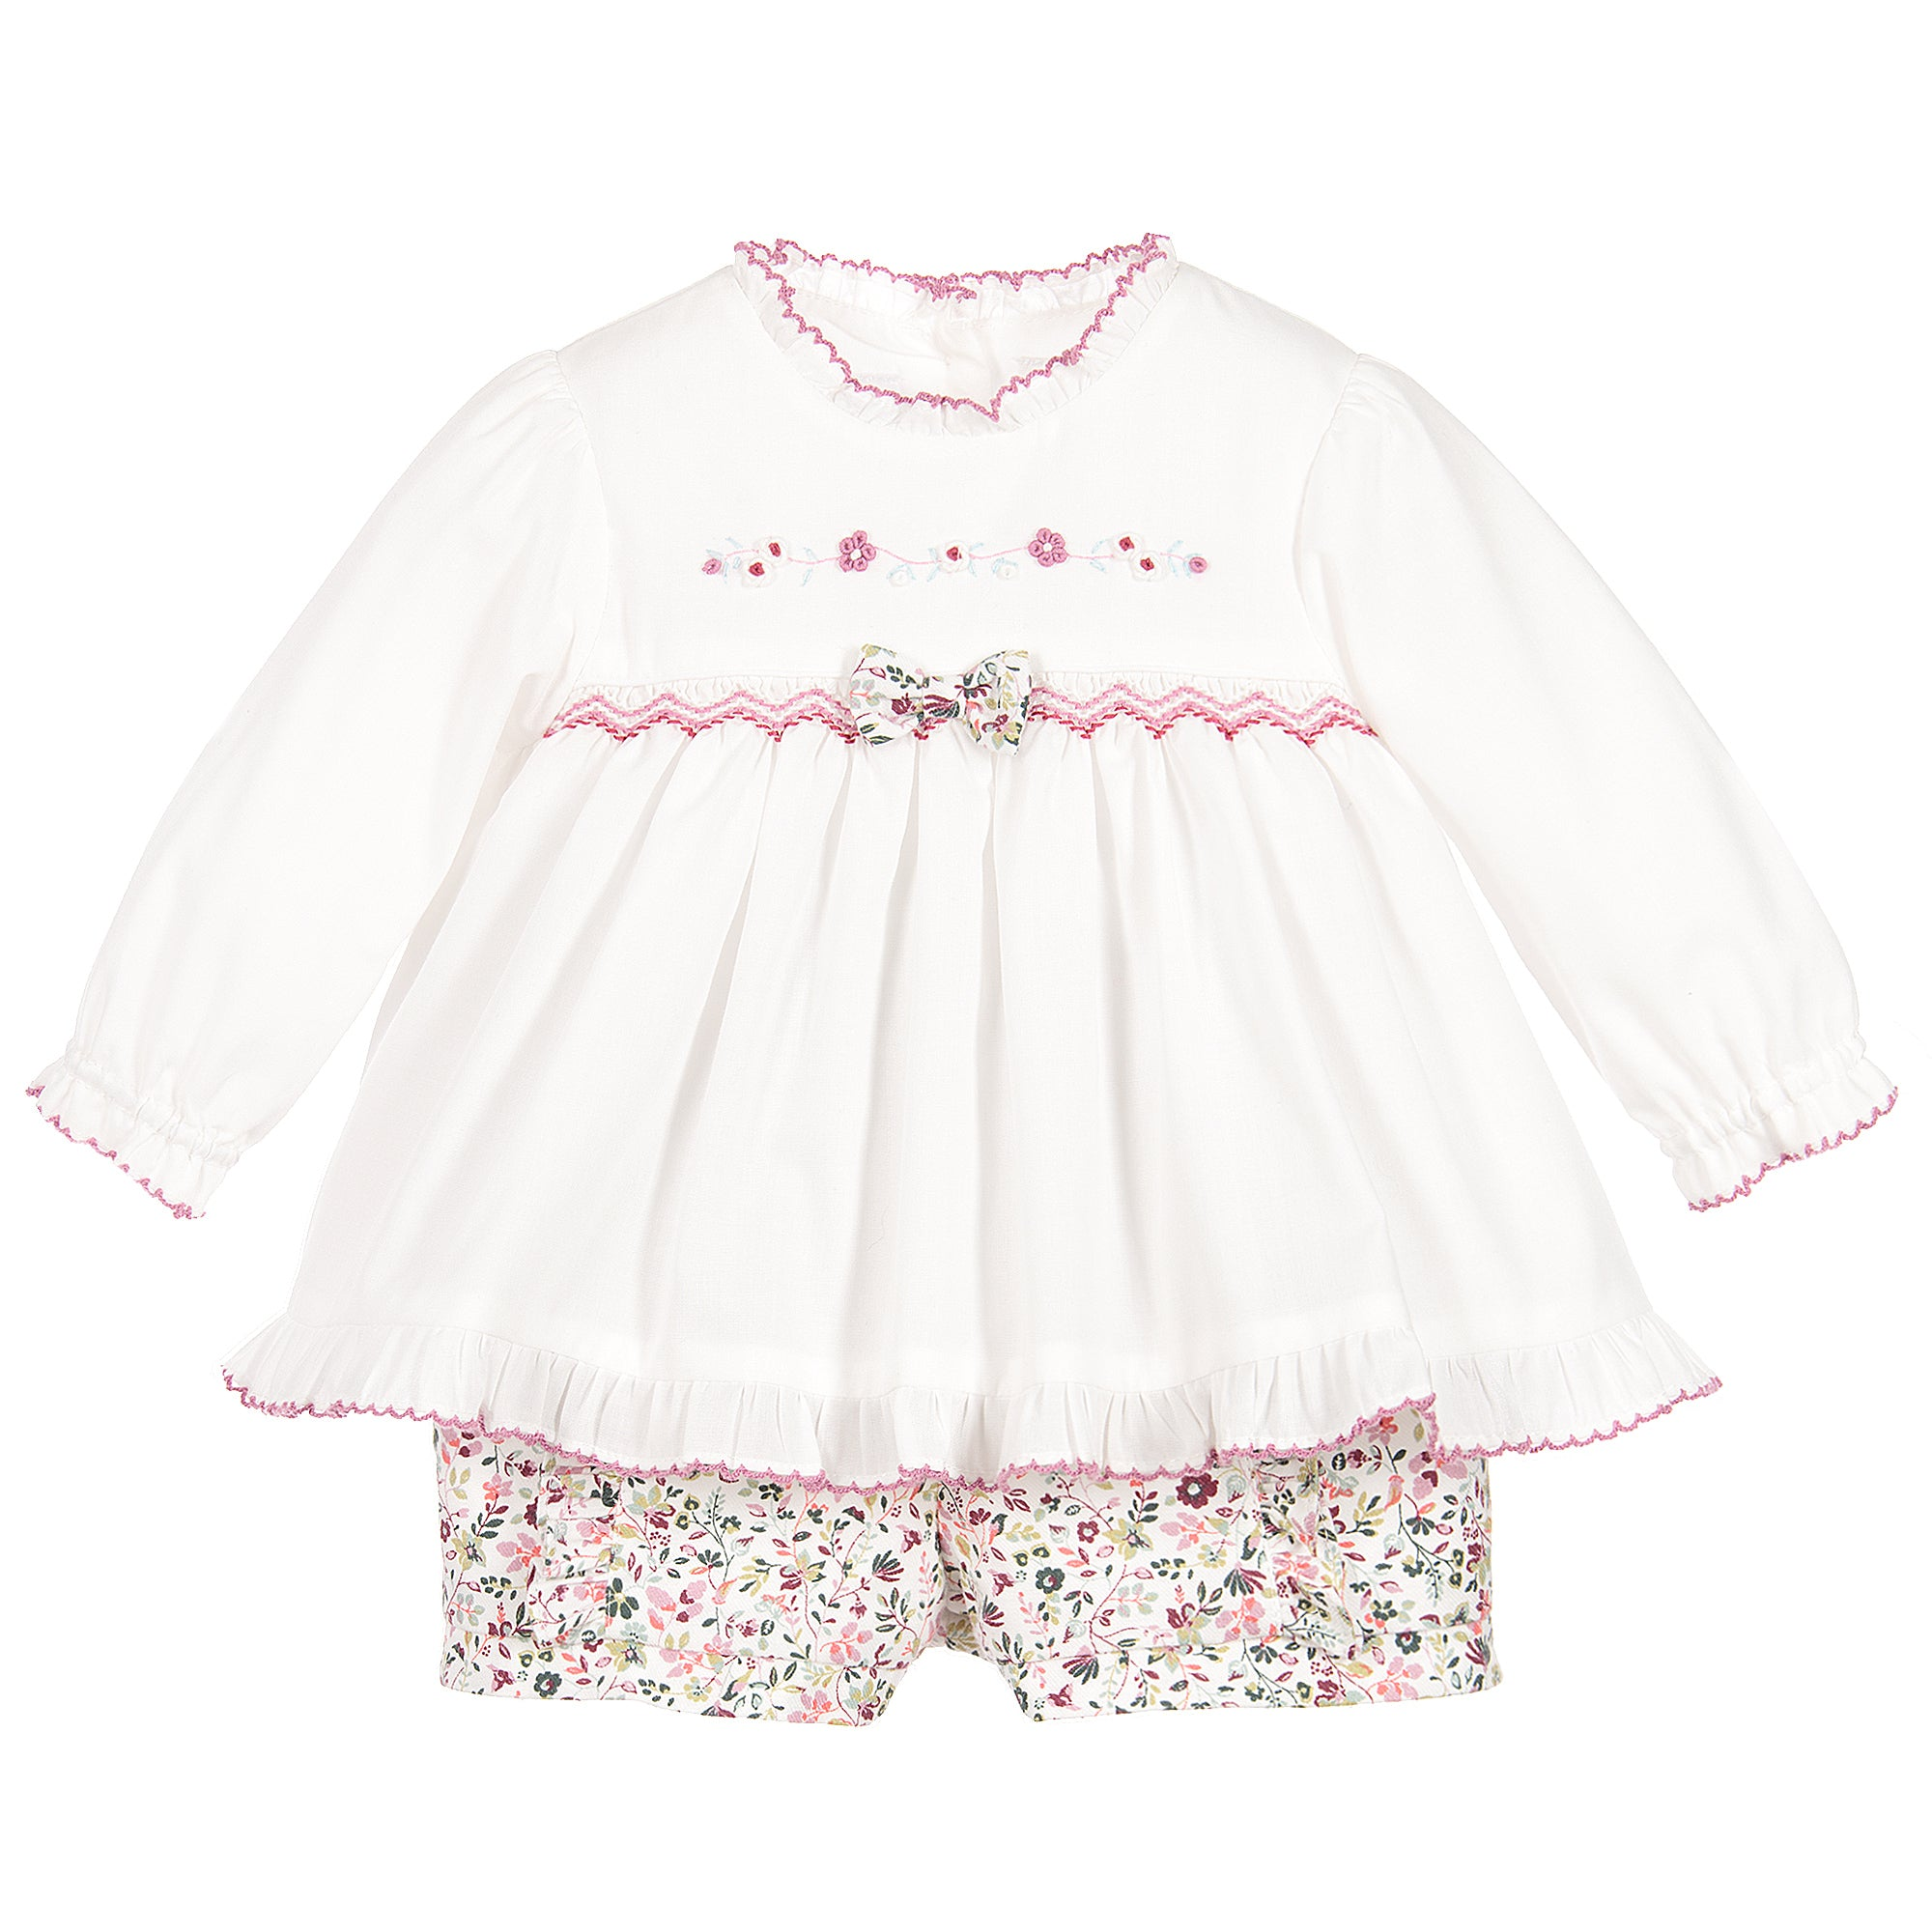 Sarah Louise Hand smocked blouse and shorts set